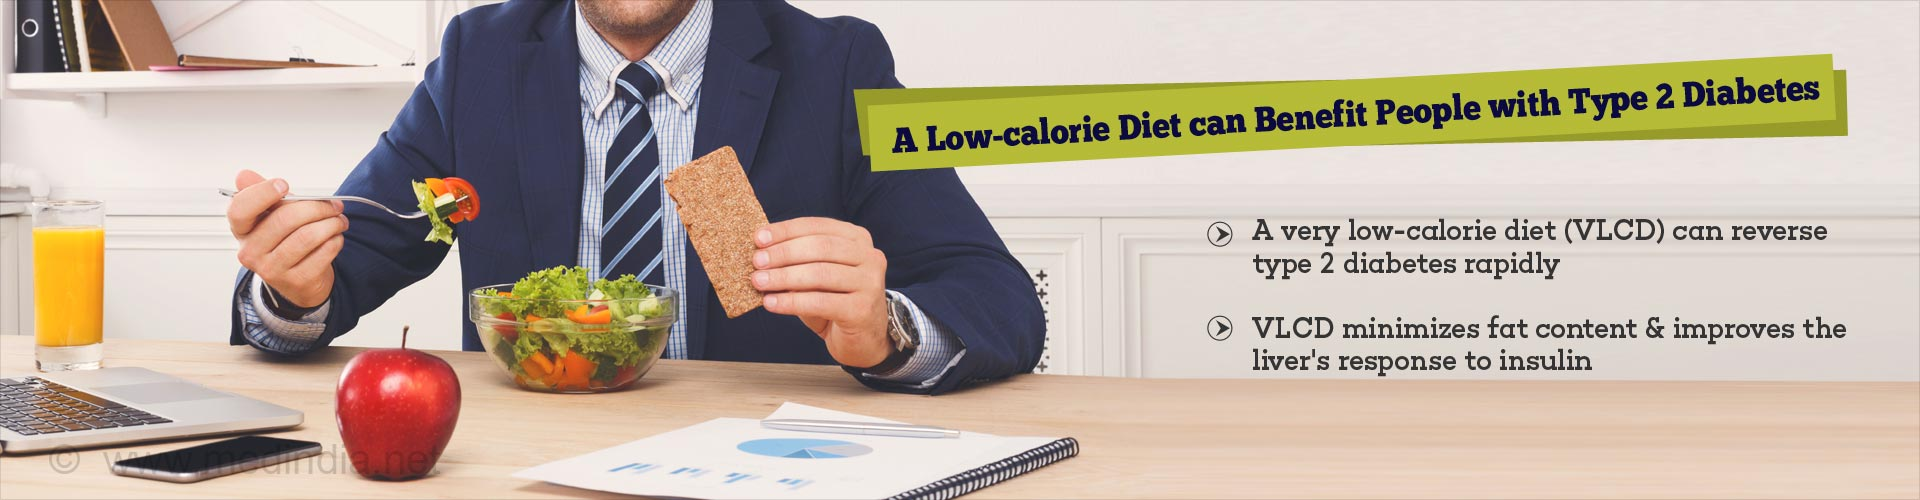 Very Low-calorie Diet can Reverse Type 2 Diabetes